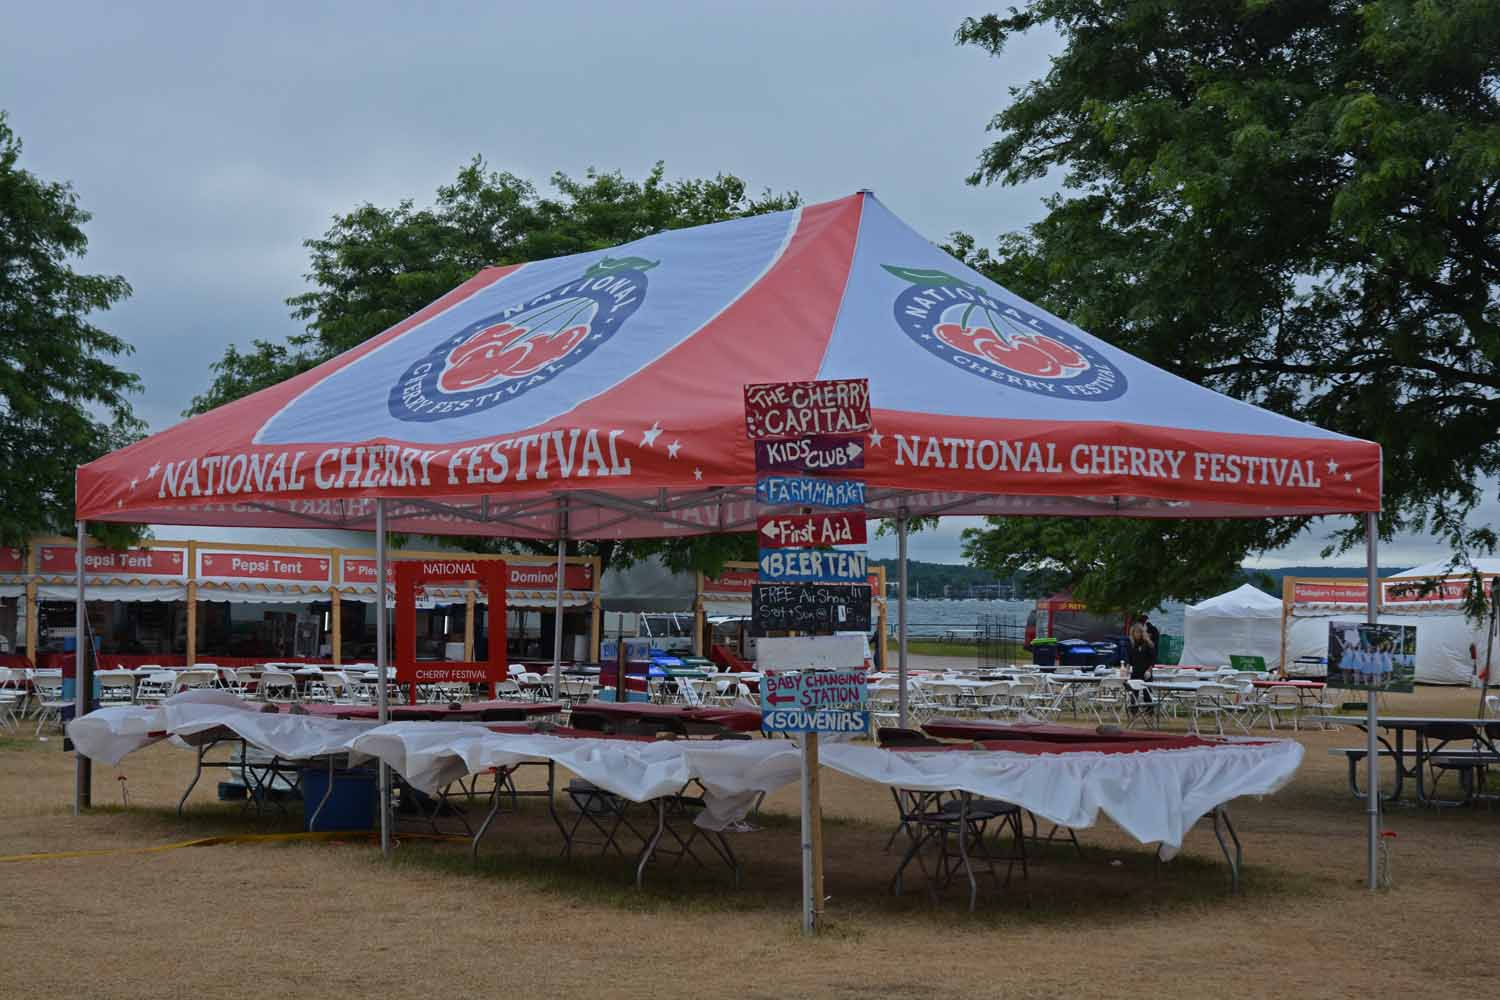 When in Traverse City in July it is hard to escape the National Cherry Festival